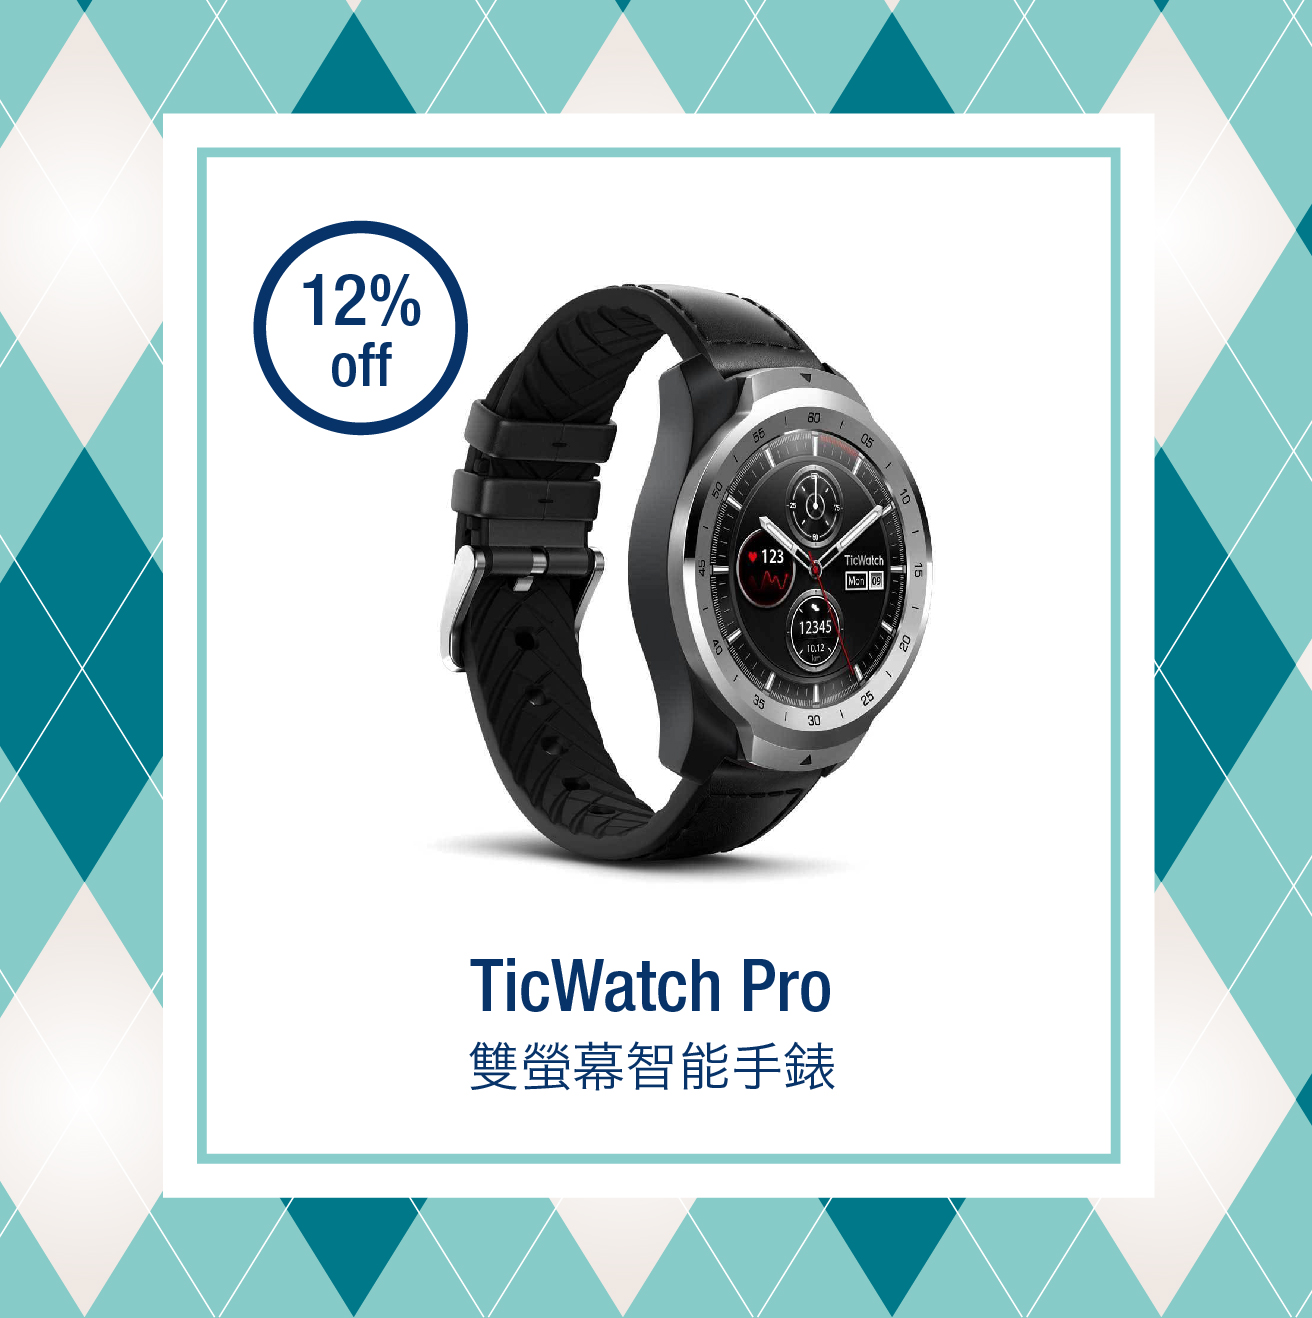 TicWatch Pro smartwatch - #TastefulDadThe dual-display Mobvoi TicWatch Pro automatically switches between two display layers to make sure it can last long and be durable enough for a sustained wearing. The TicWatch Pro is IP68 rating against water and dust. The bezel is made with stainless steel whereas the strap is genuine leather on the outside and silicone on the inside, the tasteful smartwatch monitors your heartbeat 24 hours a day and also supports GPS, Google Assistant™, music streaming, NFC contactless payment, and more.